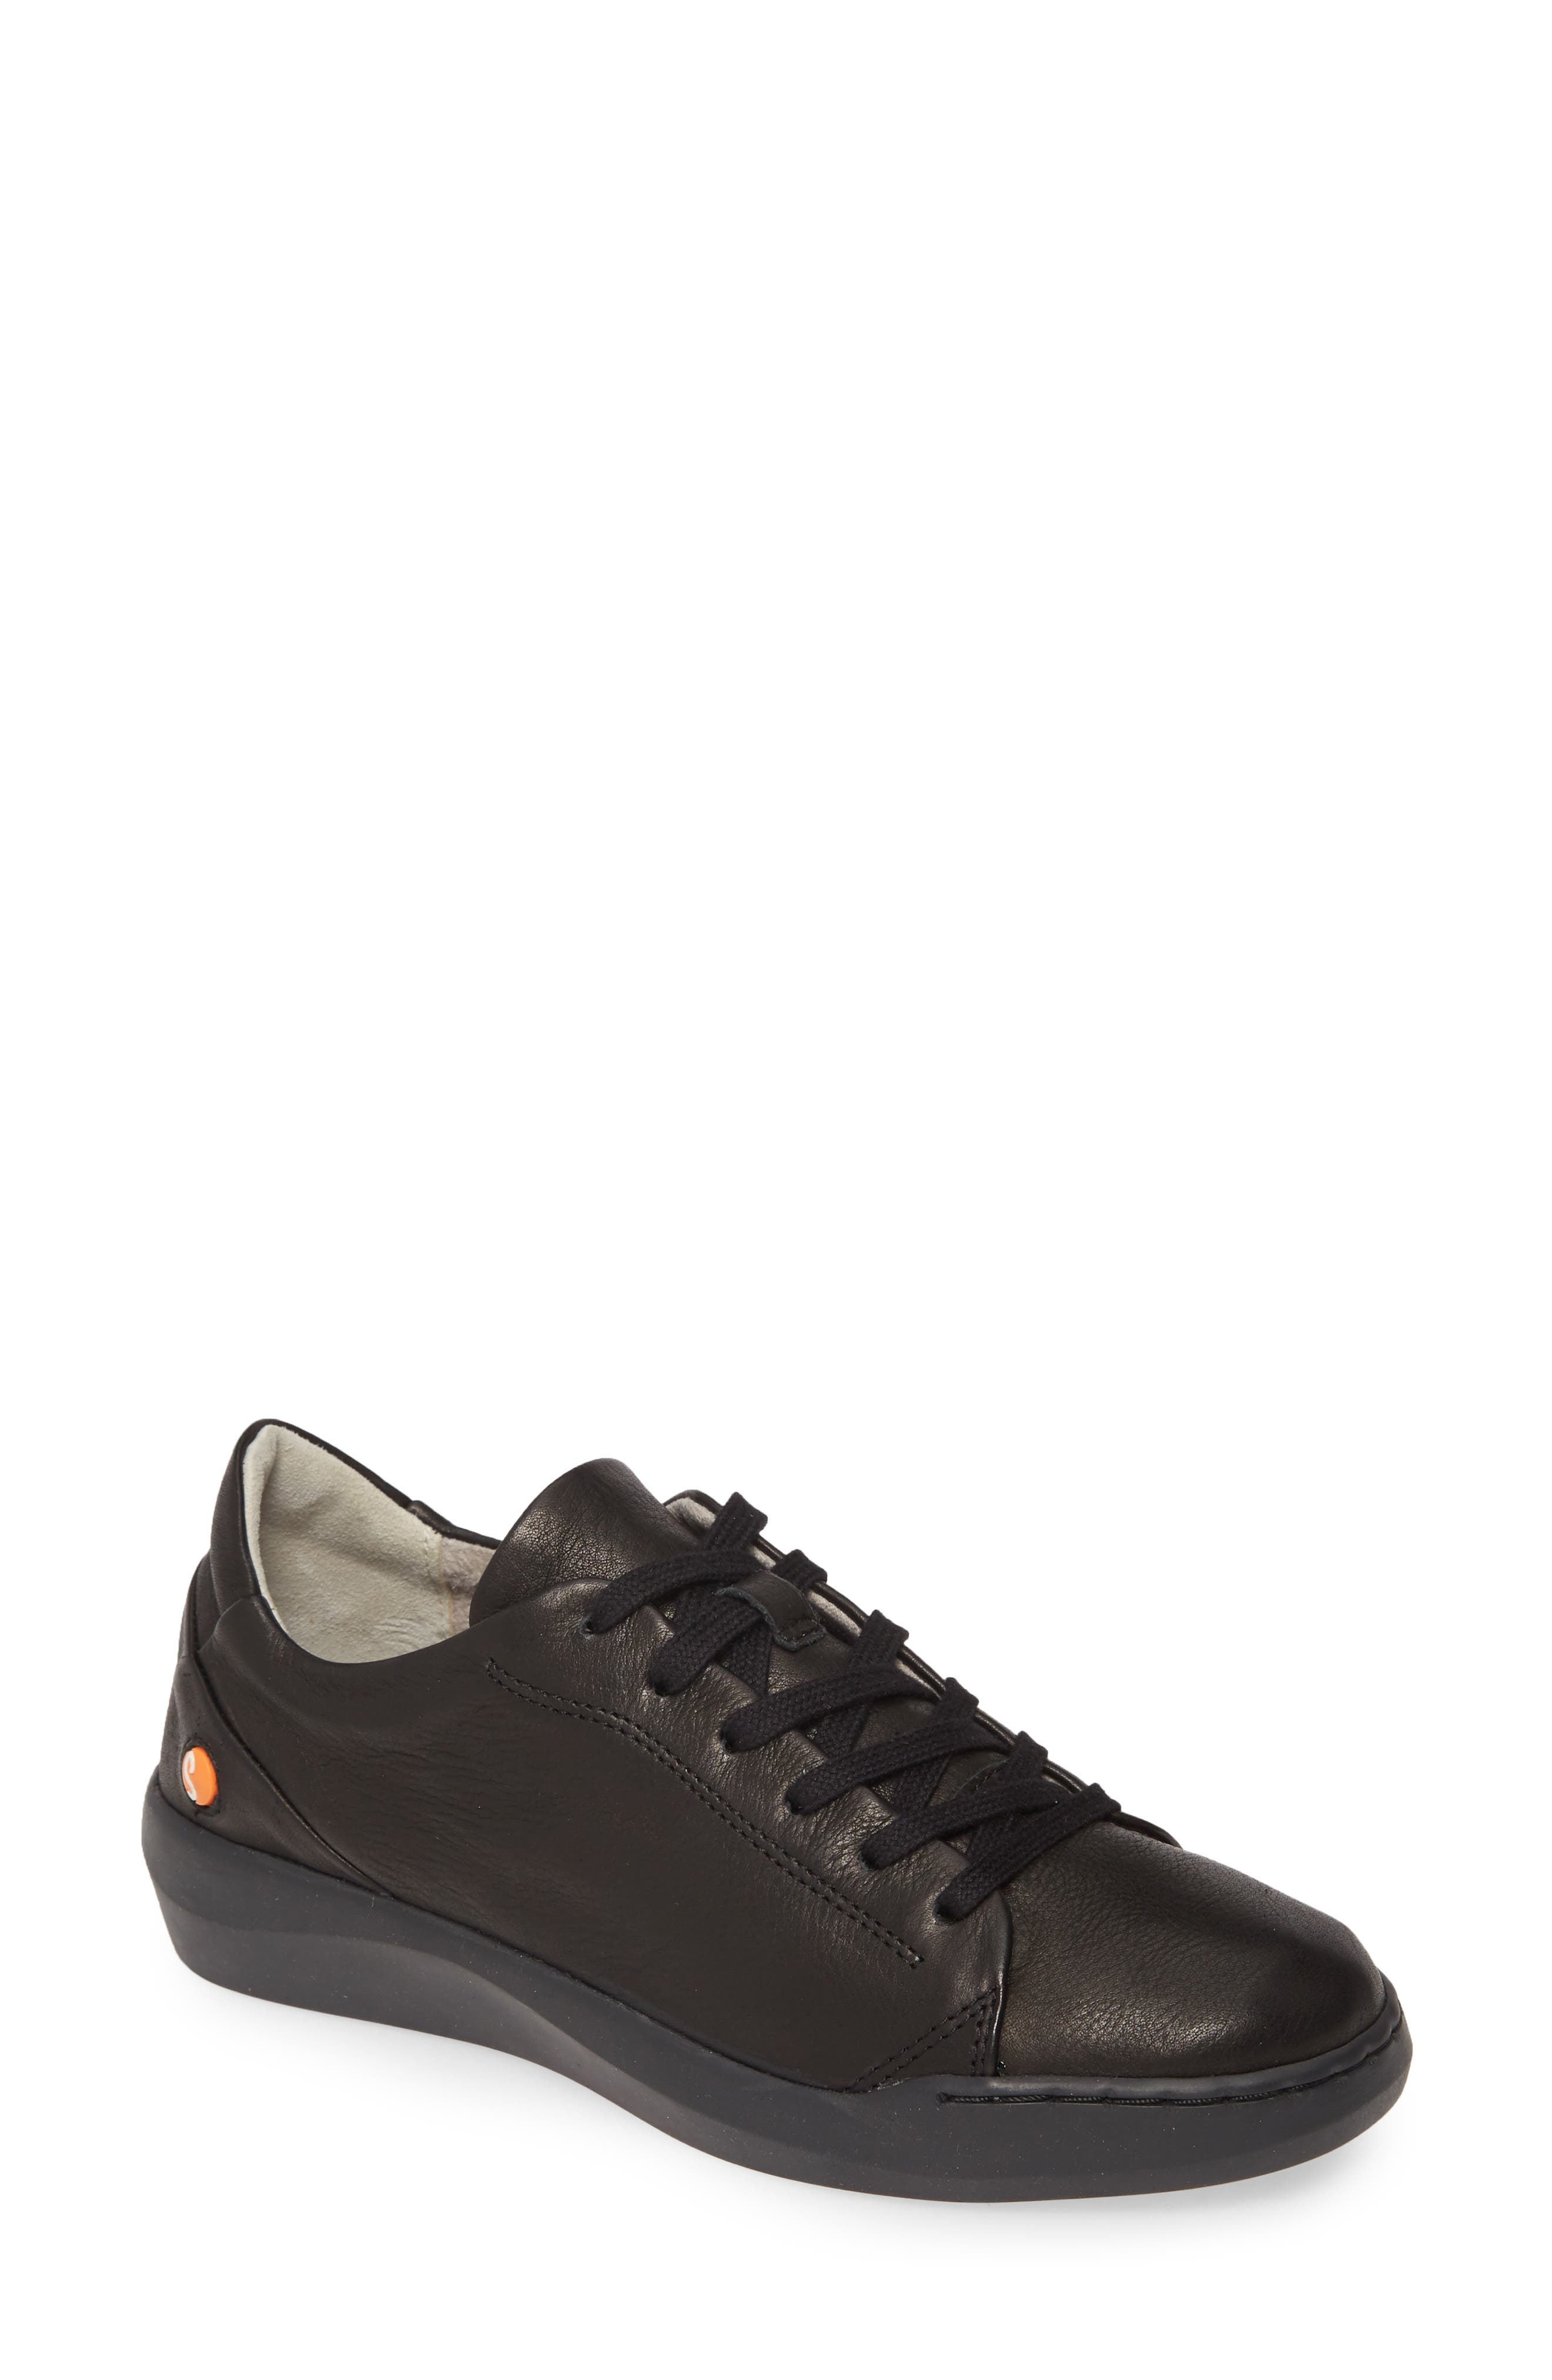 Softinos By Fly London Bauk Sneaker, Black